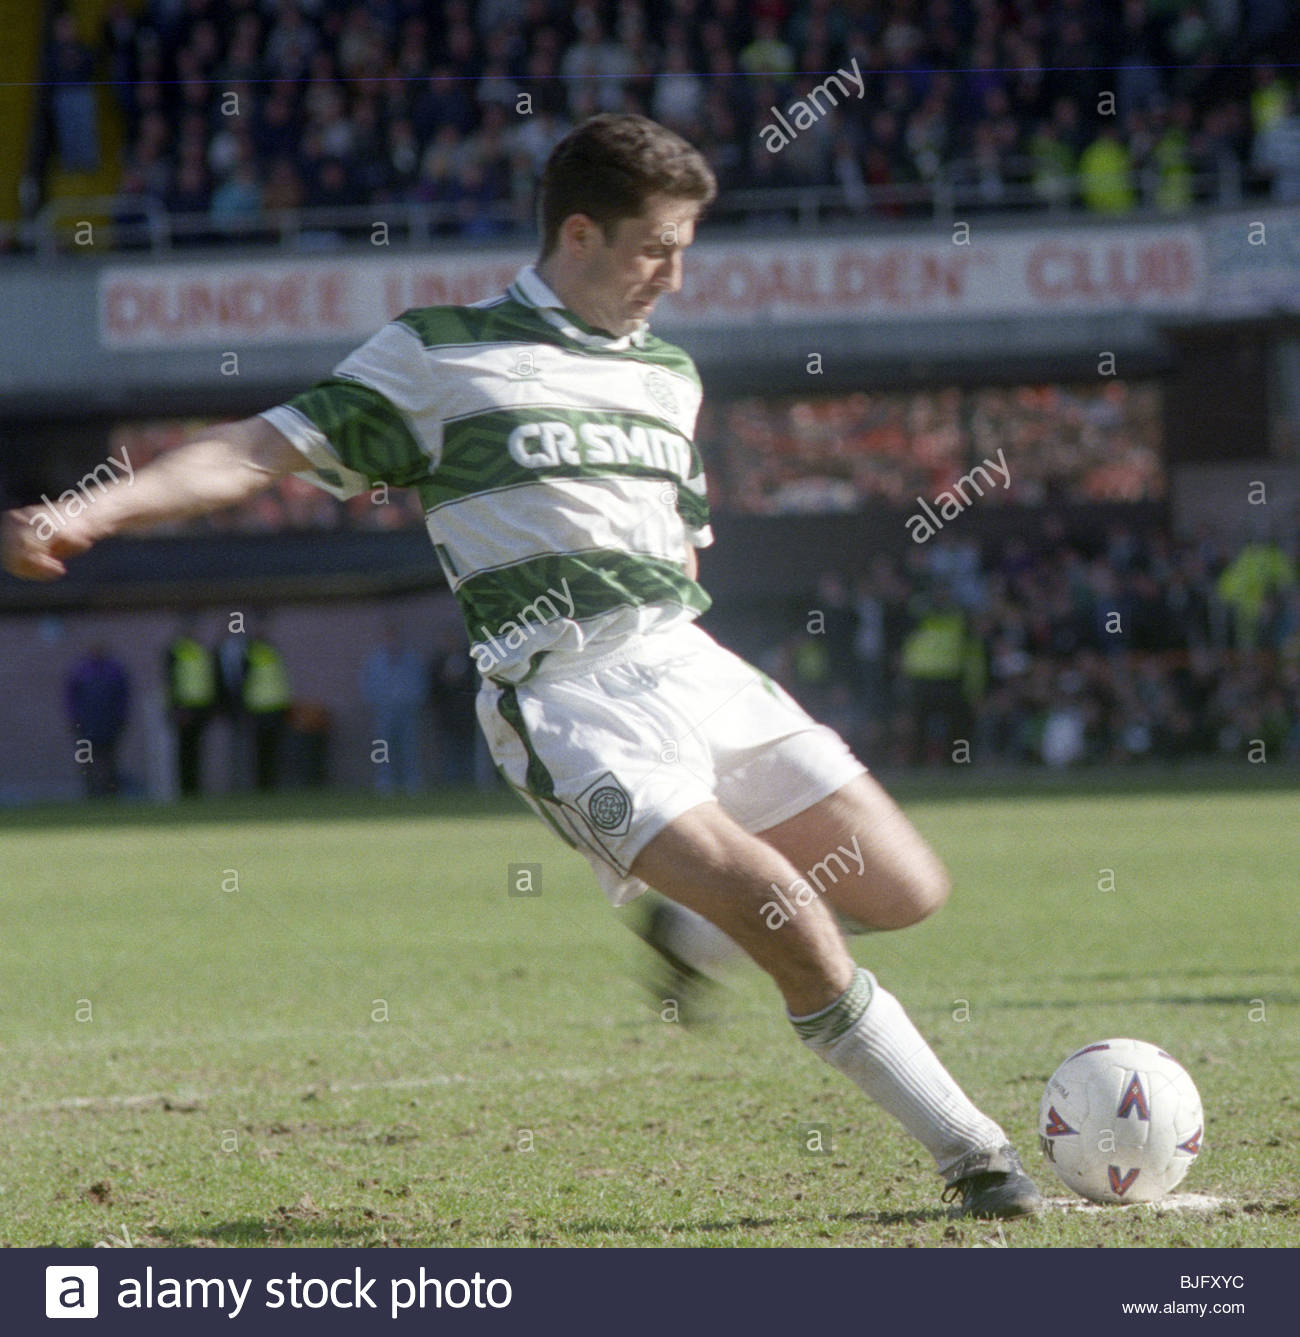 02/04/94 PREMIER DIVISION DUNDEE UTD V CELTIC (1-3) TANNADICE - DUNDEE Celtic's John Collins converts a penalty. - Stock Image